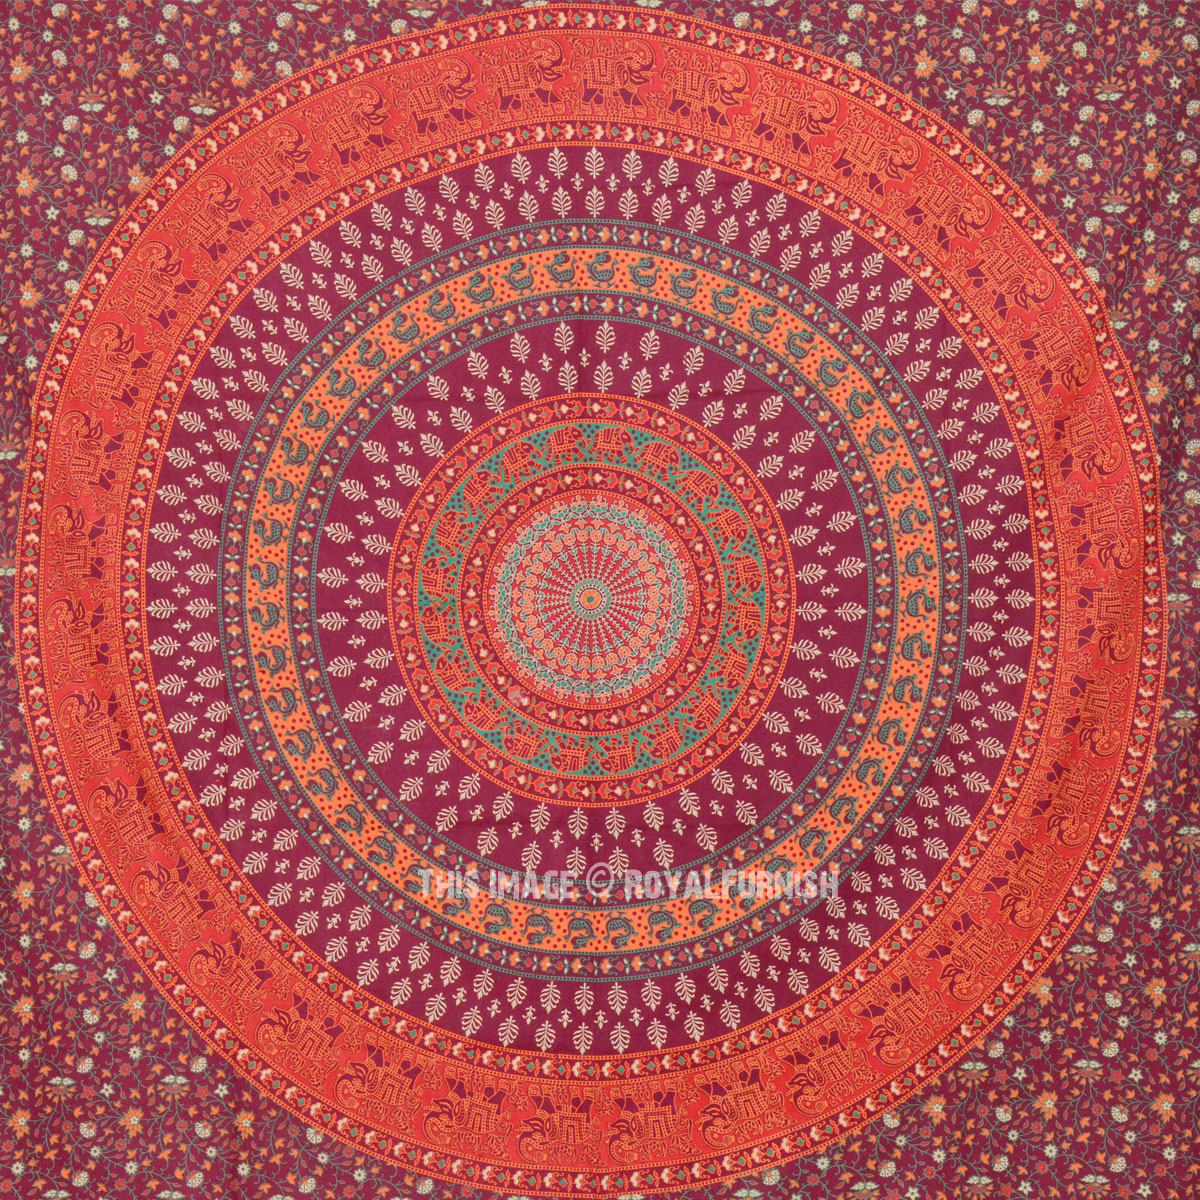 Maroon Elephant Amp Floral Mandala Wall Tapestry Hippie